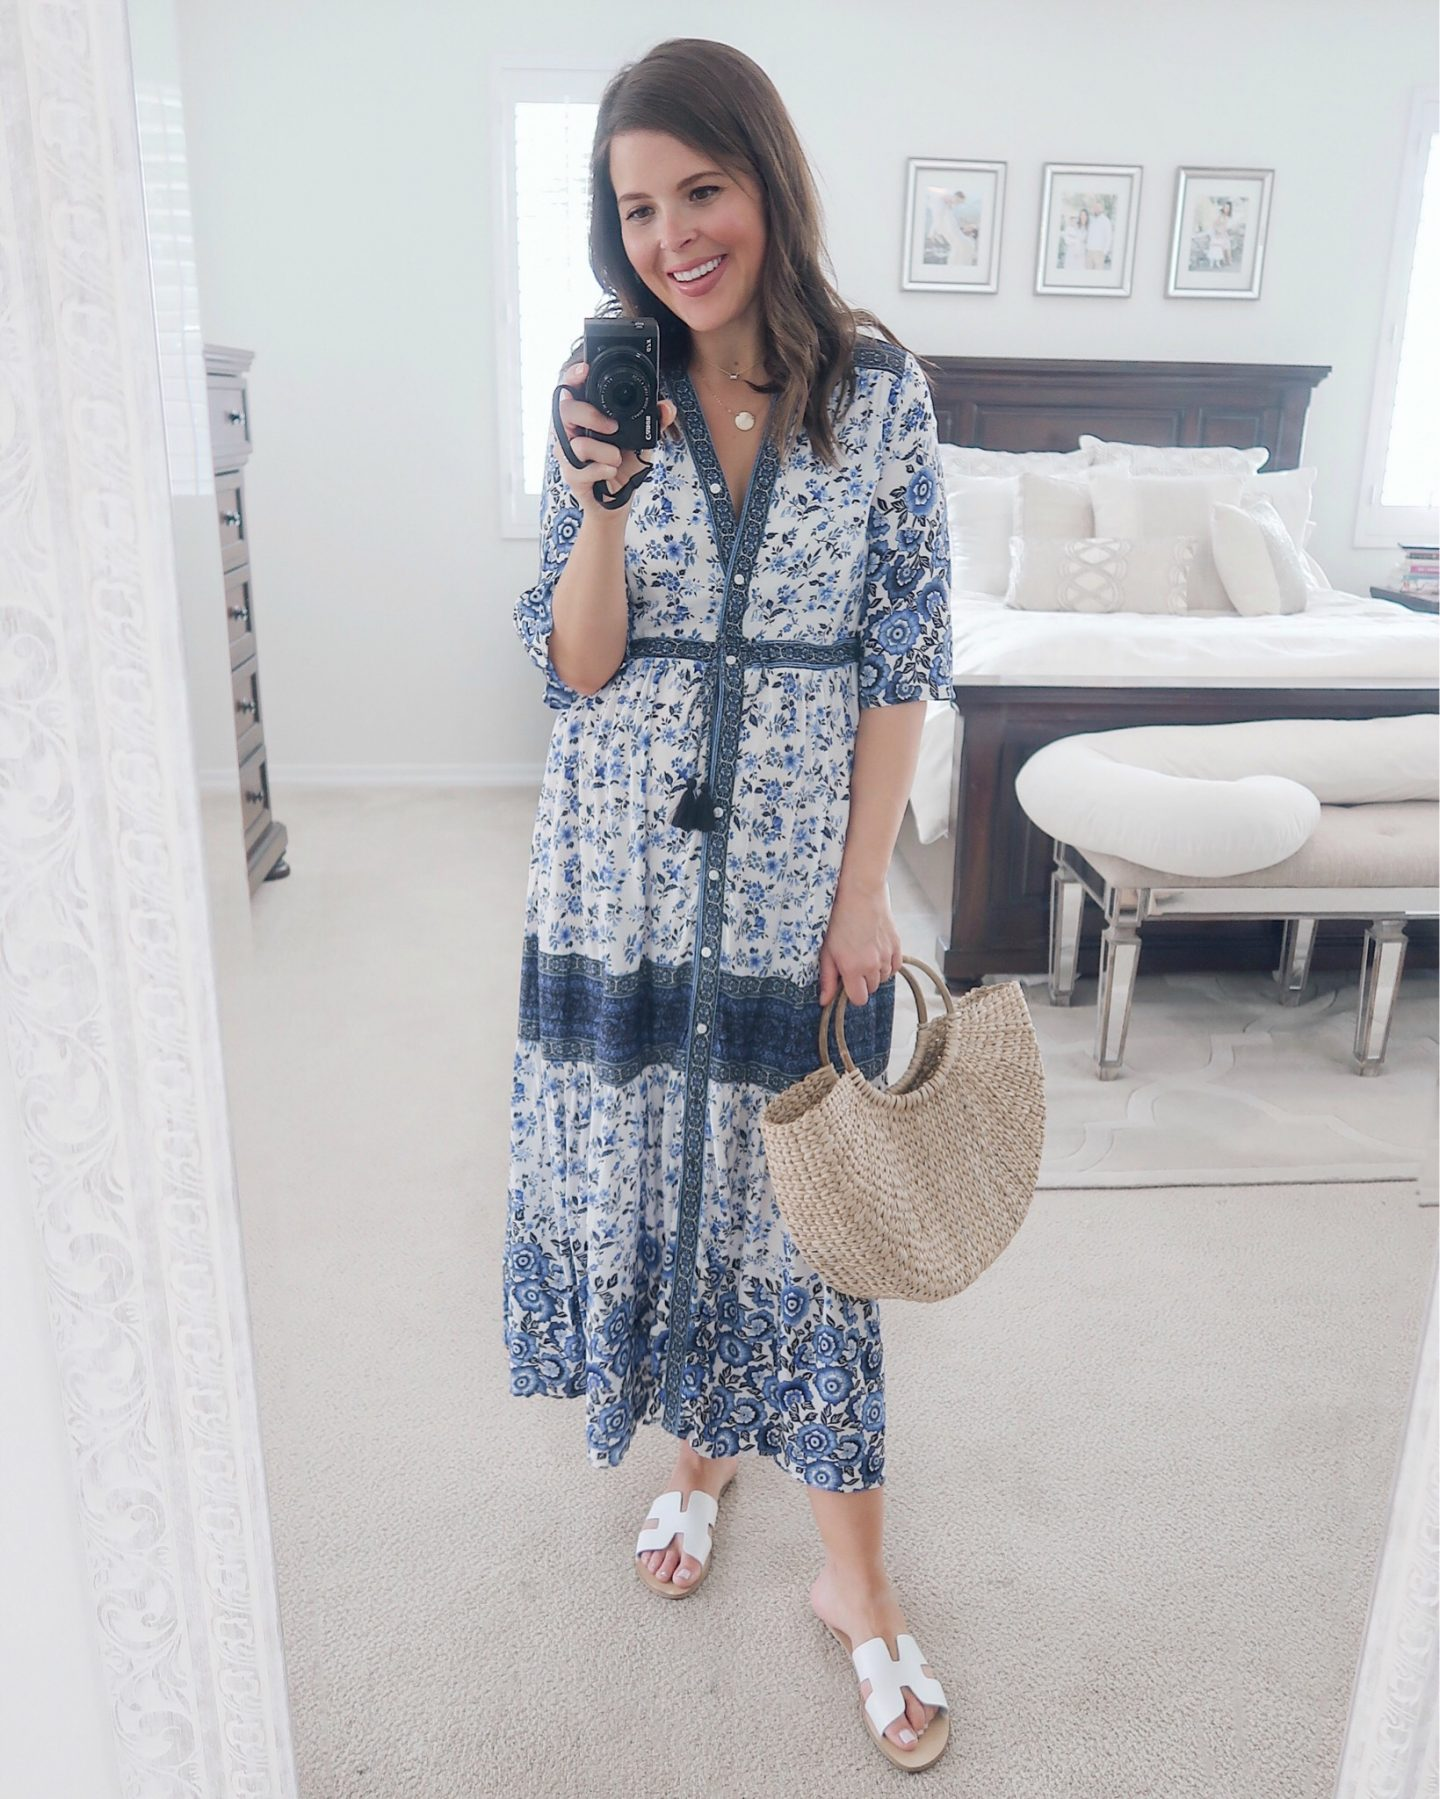 amazon try-on brie_bemis_rearick_amazon_women_summer_floral_print_drawstring_bohemian_maxi_dress